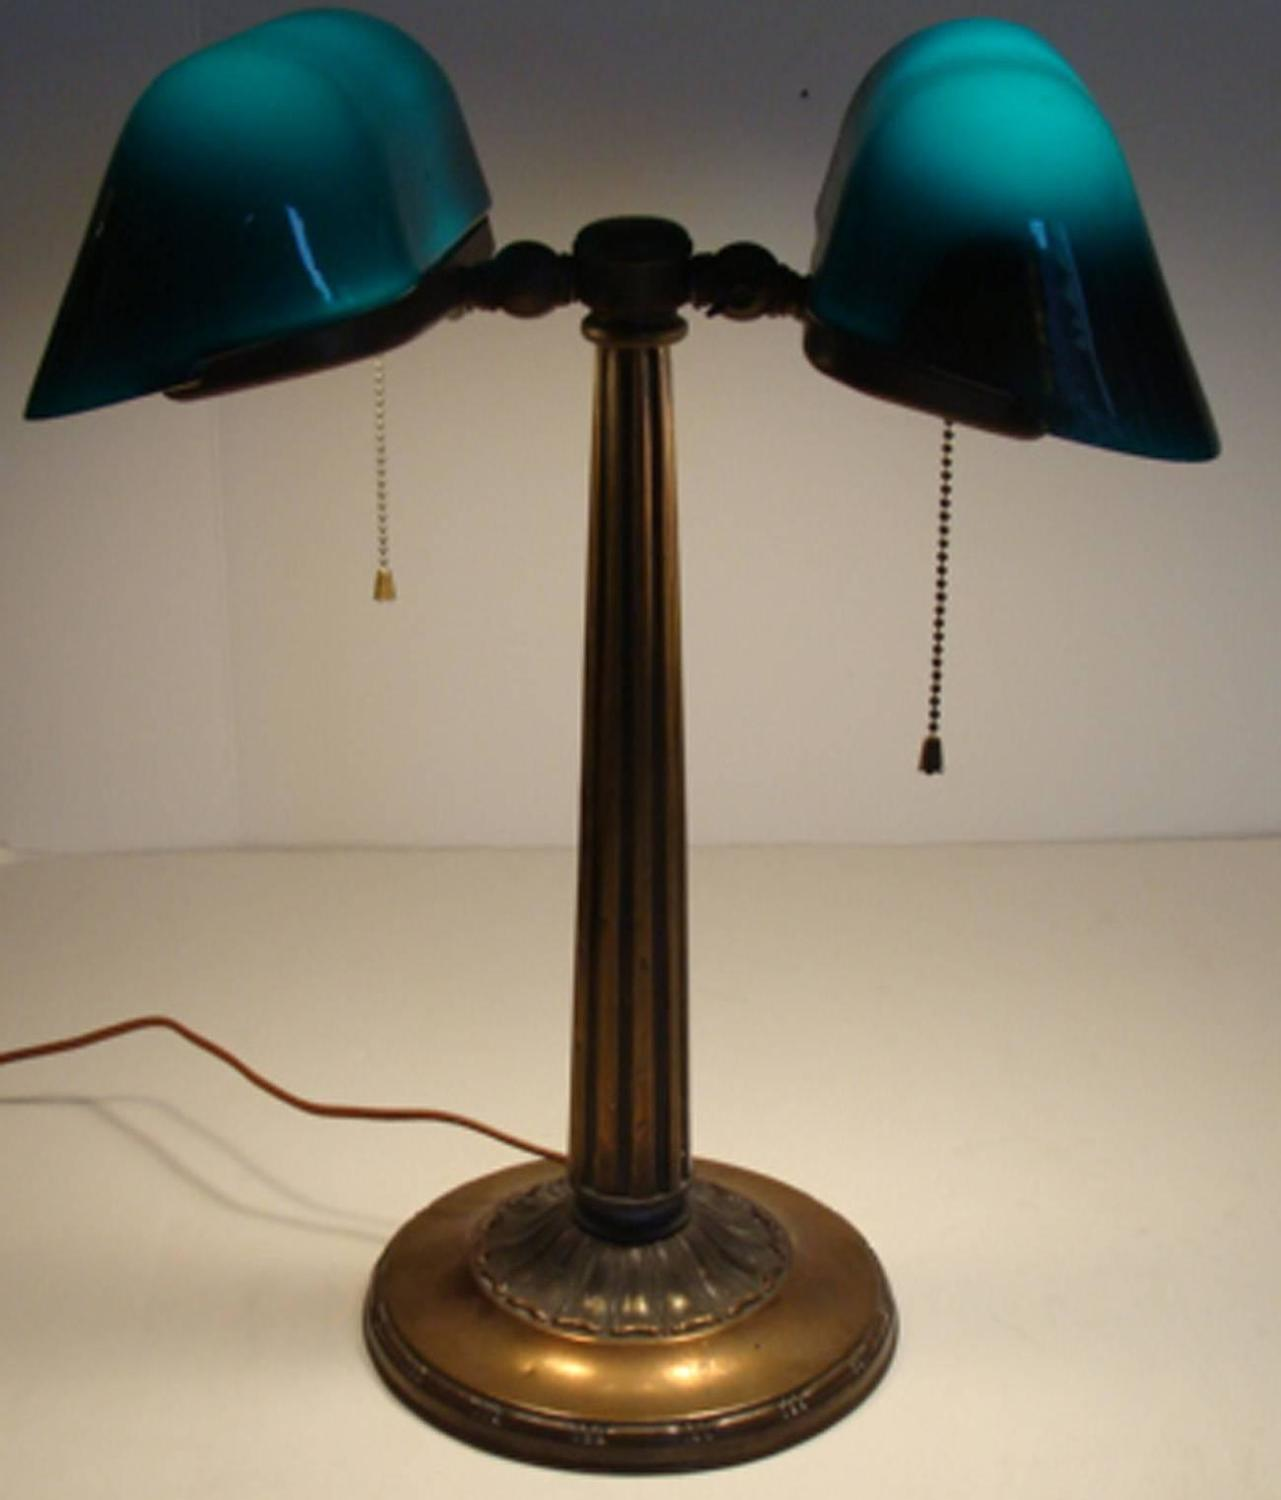 Antique Emeralite Banker S Lamp For Sale At 1stdibs